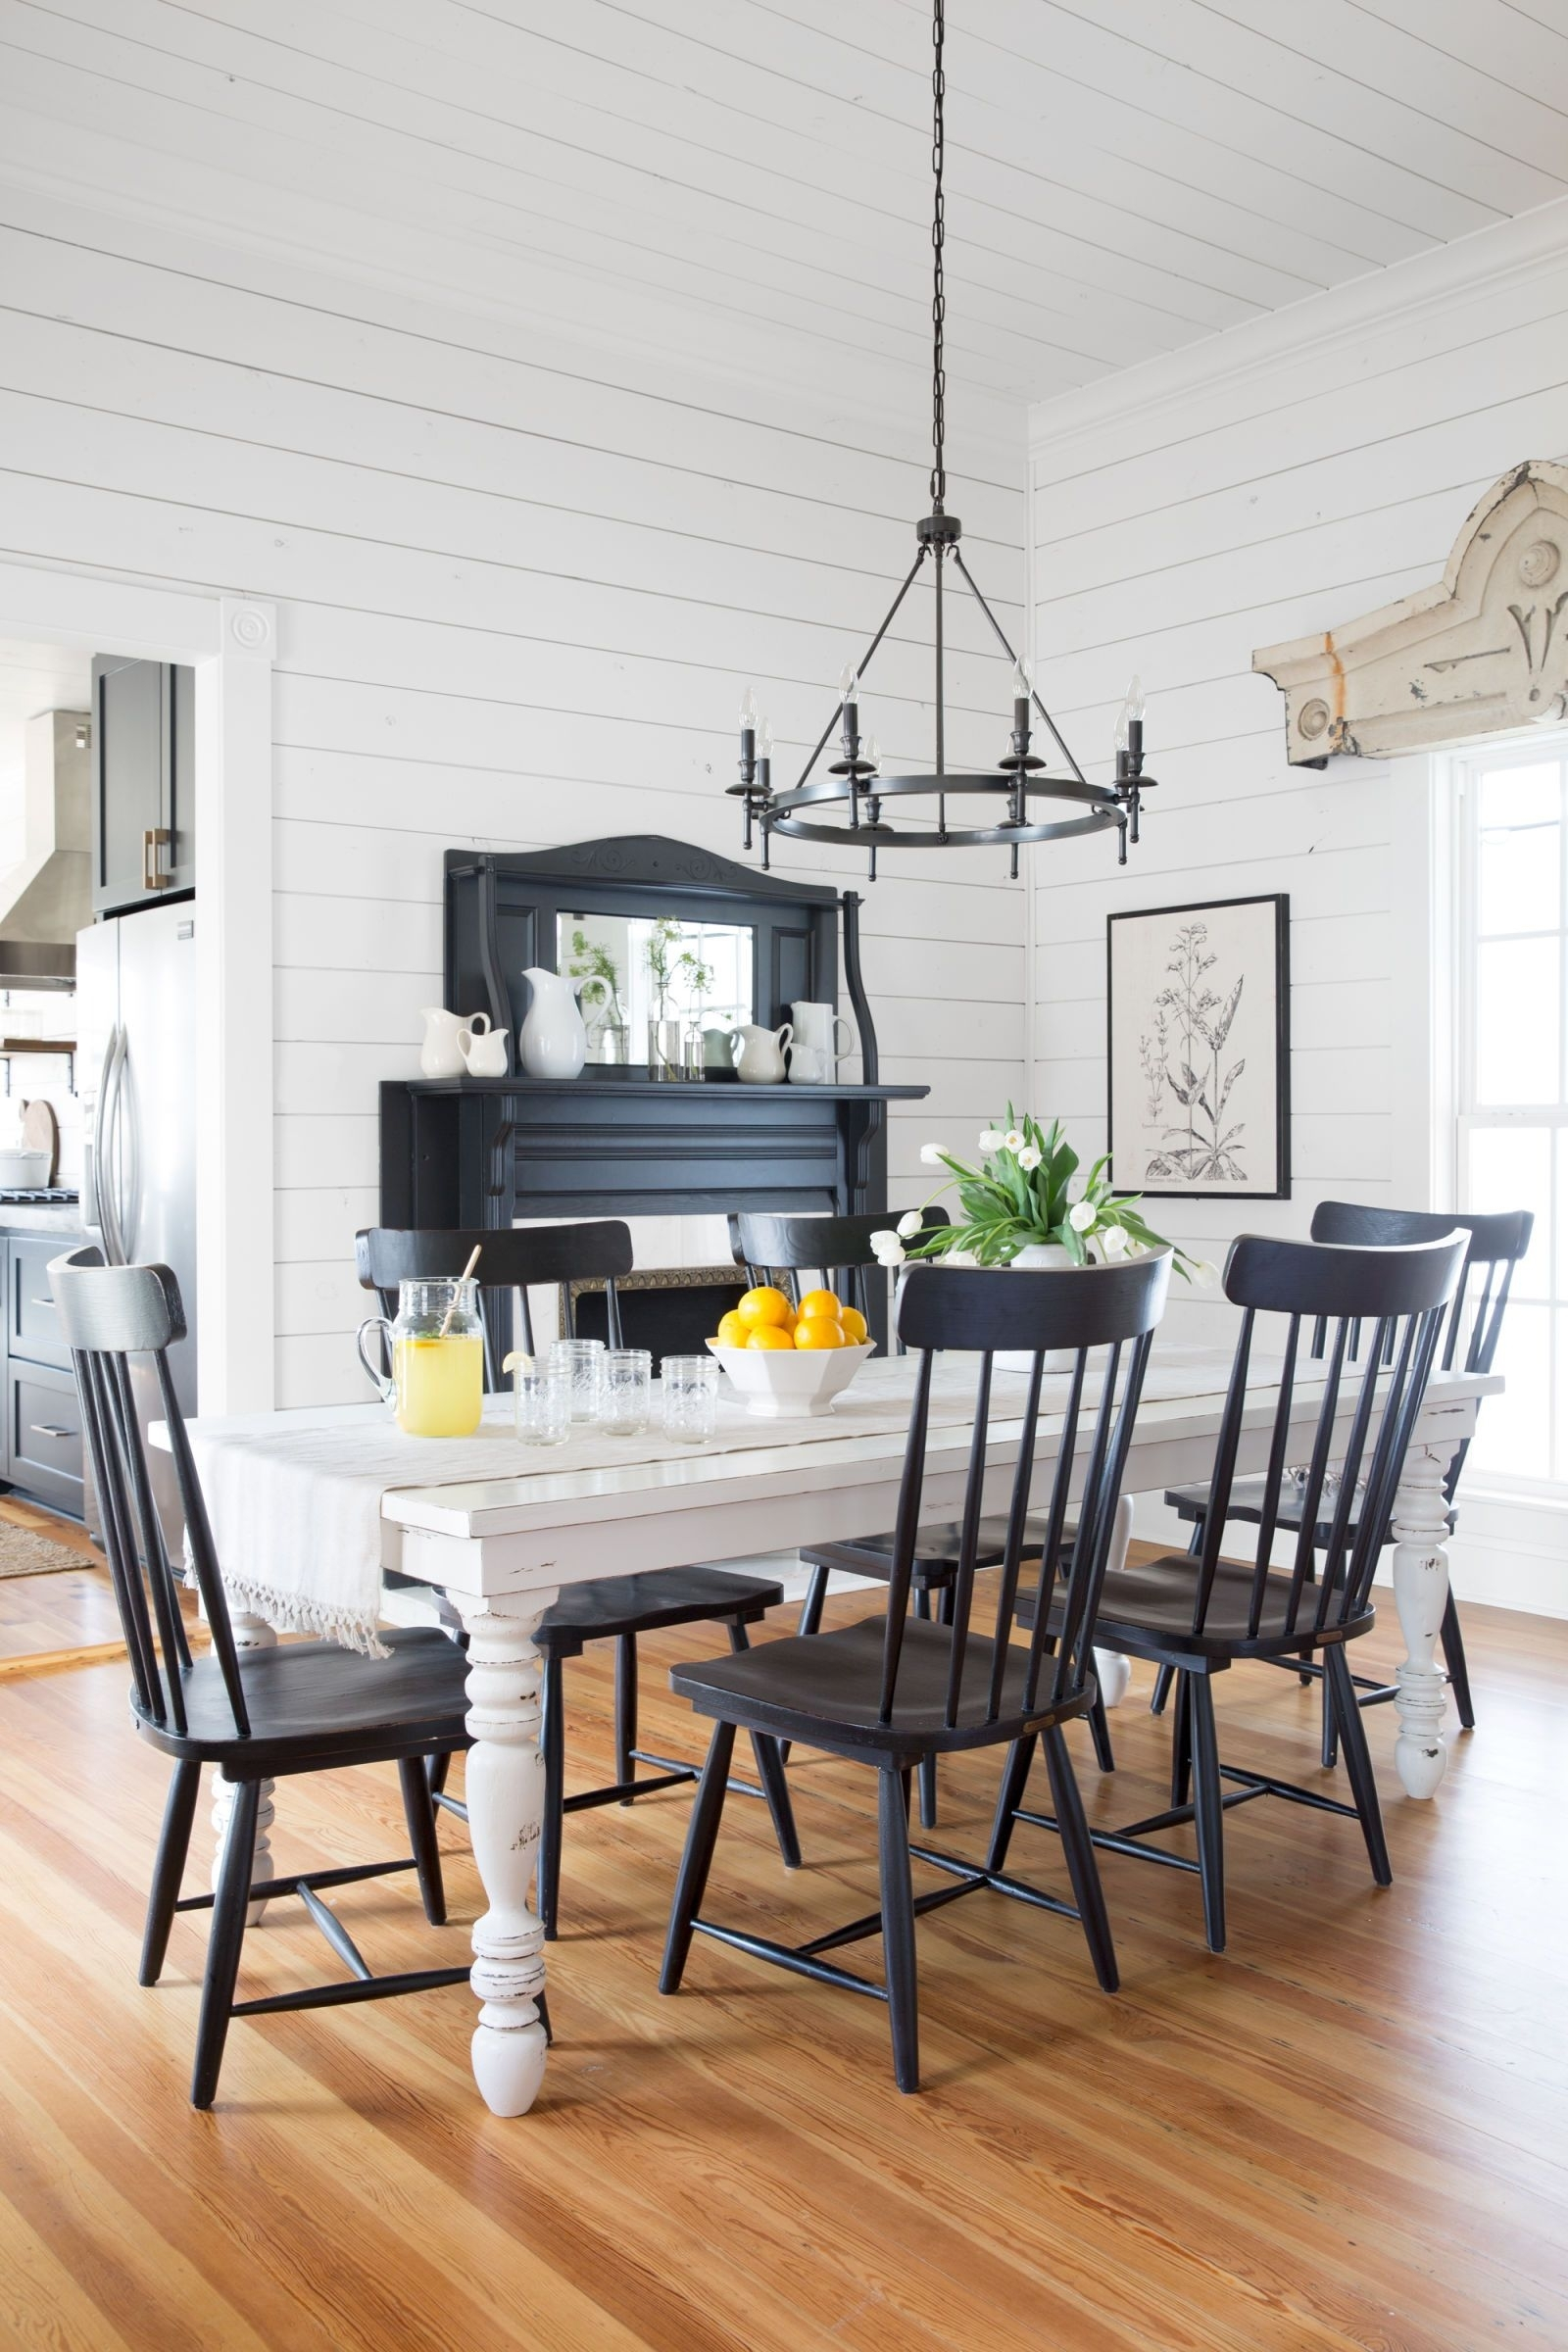 Take A Tour Of Chip And Joanna Gaines' Magnolia House B&b | Country Intended For 2018 Magnolia Home Breakfast Round Black Dining Tables (Photo 11 of 20)